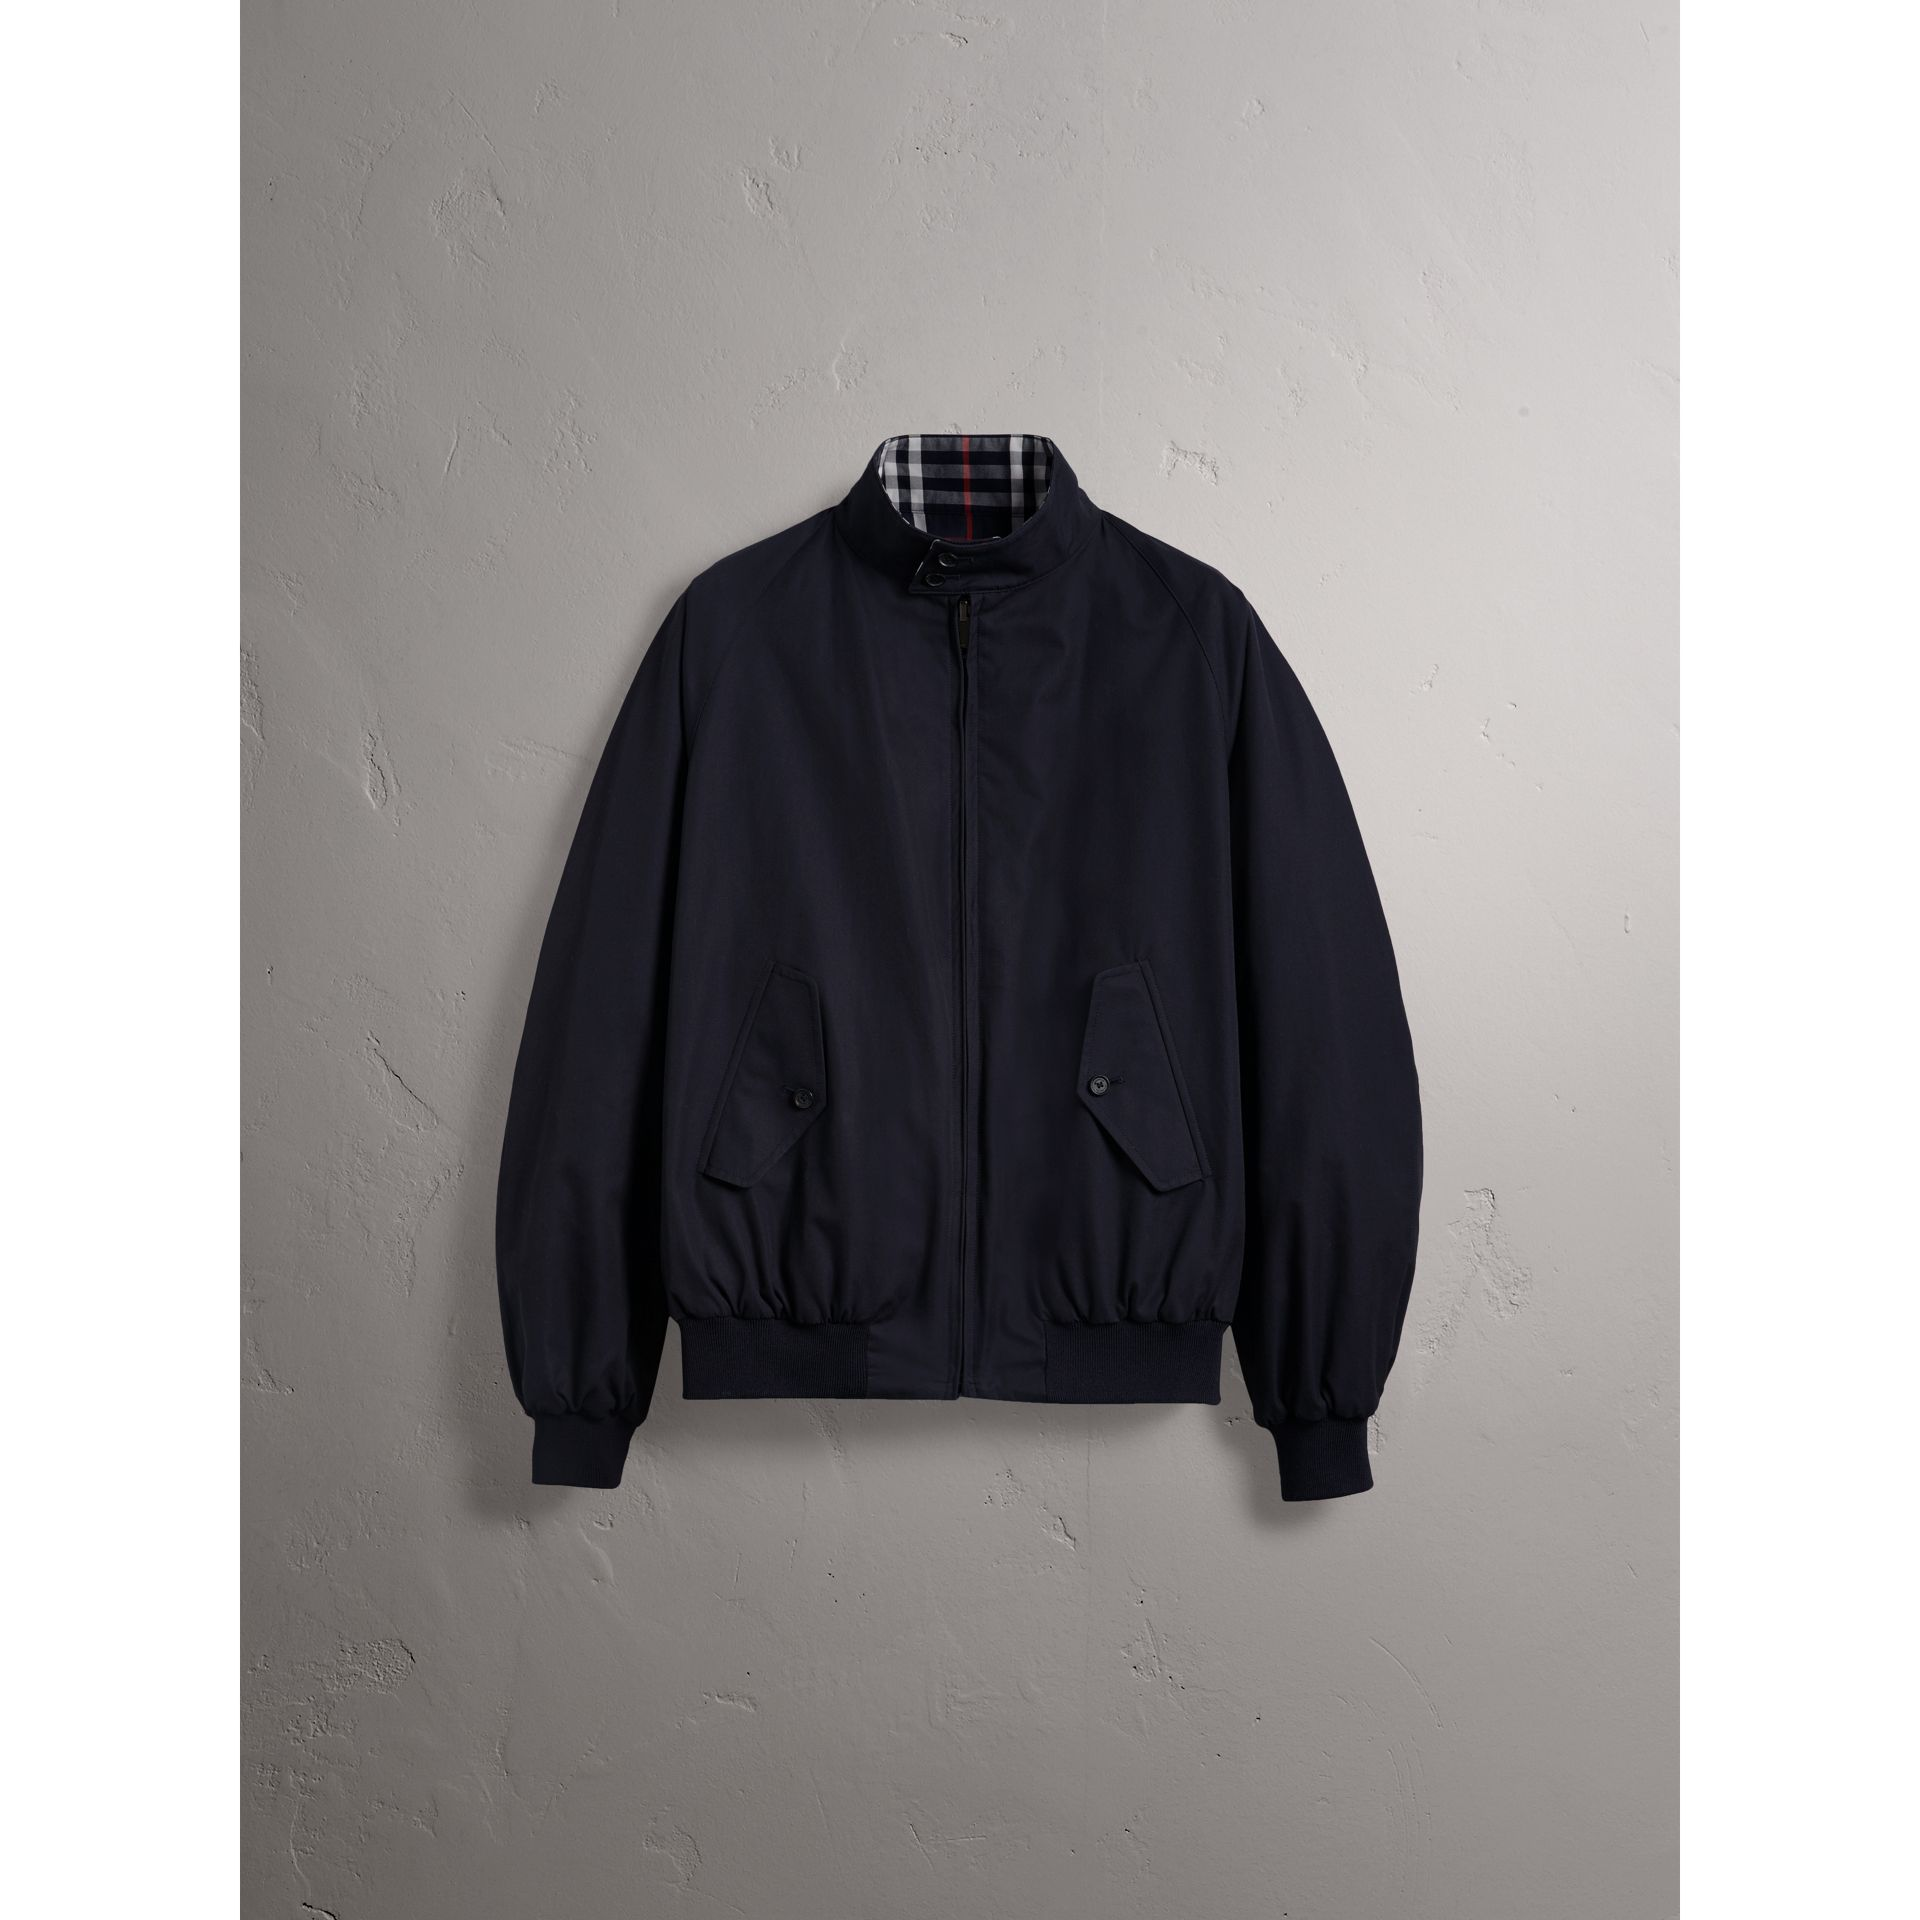 Veste Harrington réversible Gosha x Burberry (Marine) | Burberry - photo de la galerie 4